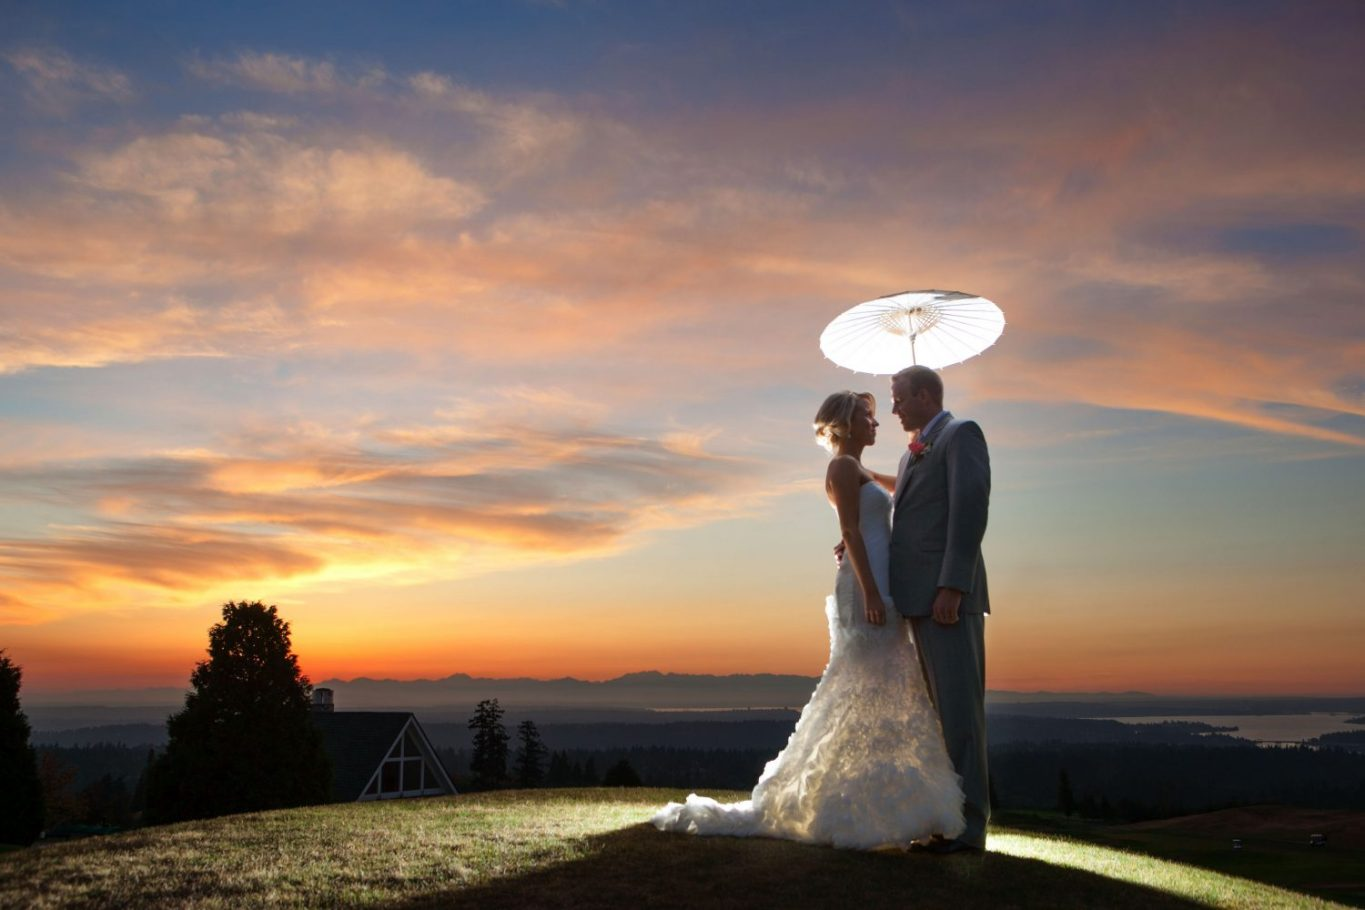 newcastle-wedding-sunset-photo-seattle-photographer